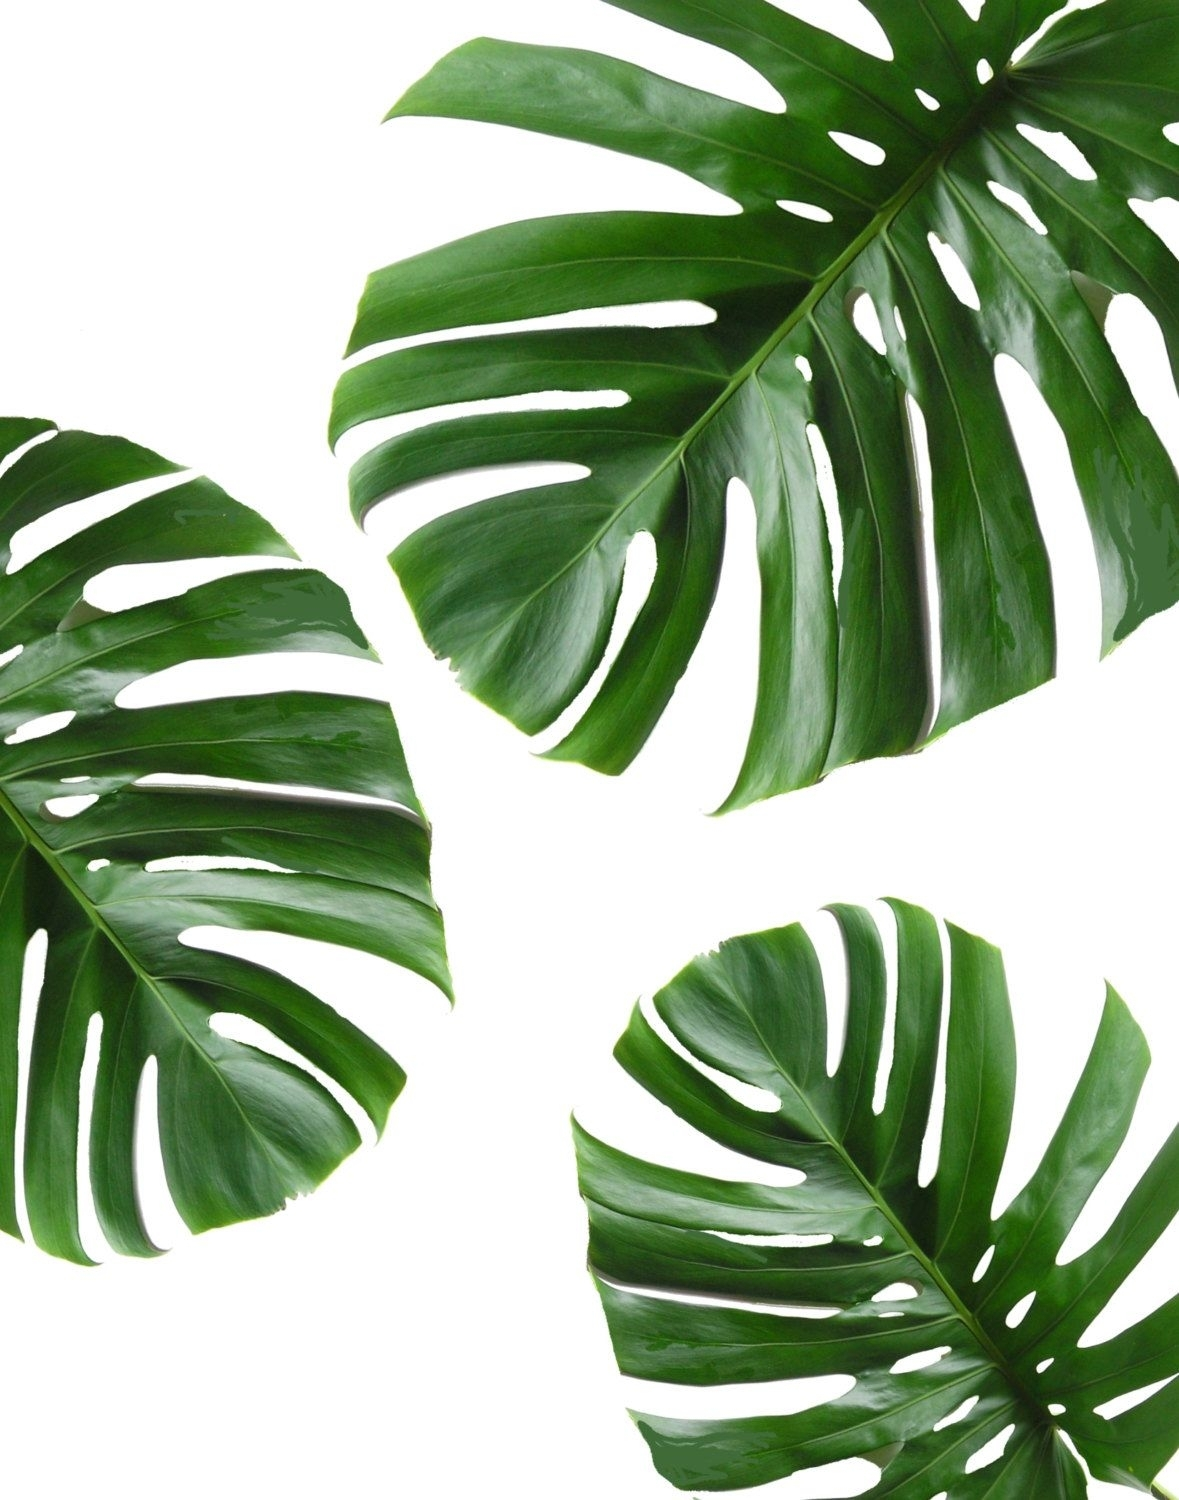 Tropical Leaf, Printable Art, Monstera Leaves, Tropical Leaves for Green Wall Art (Image 20 of 20)